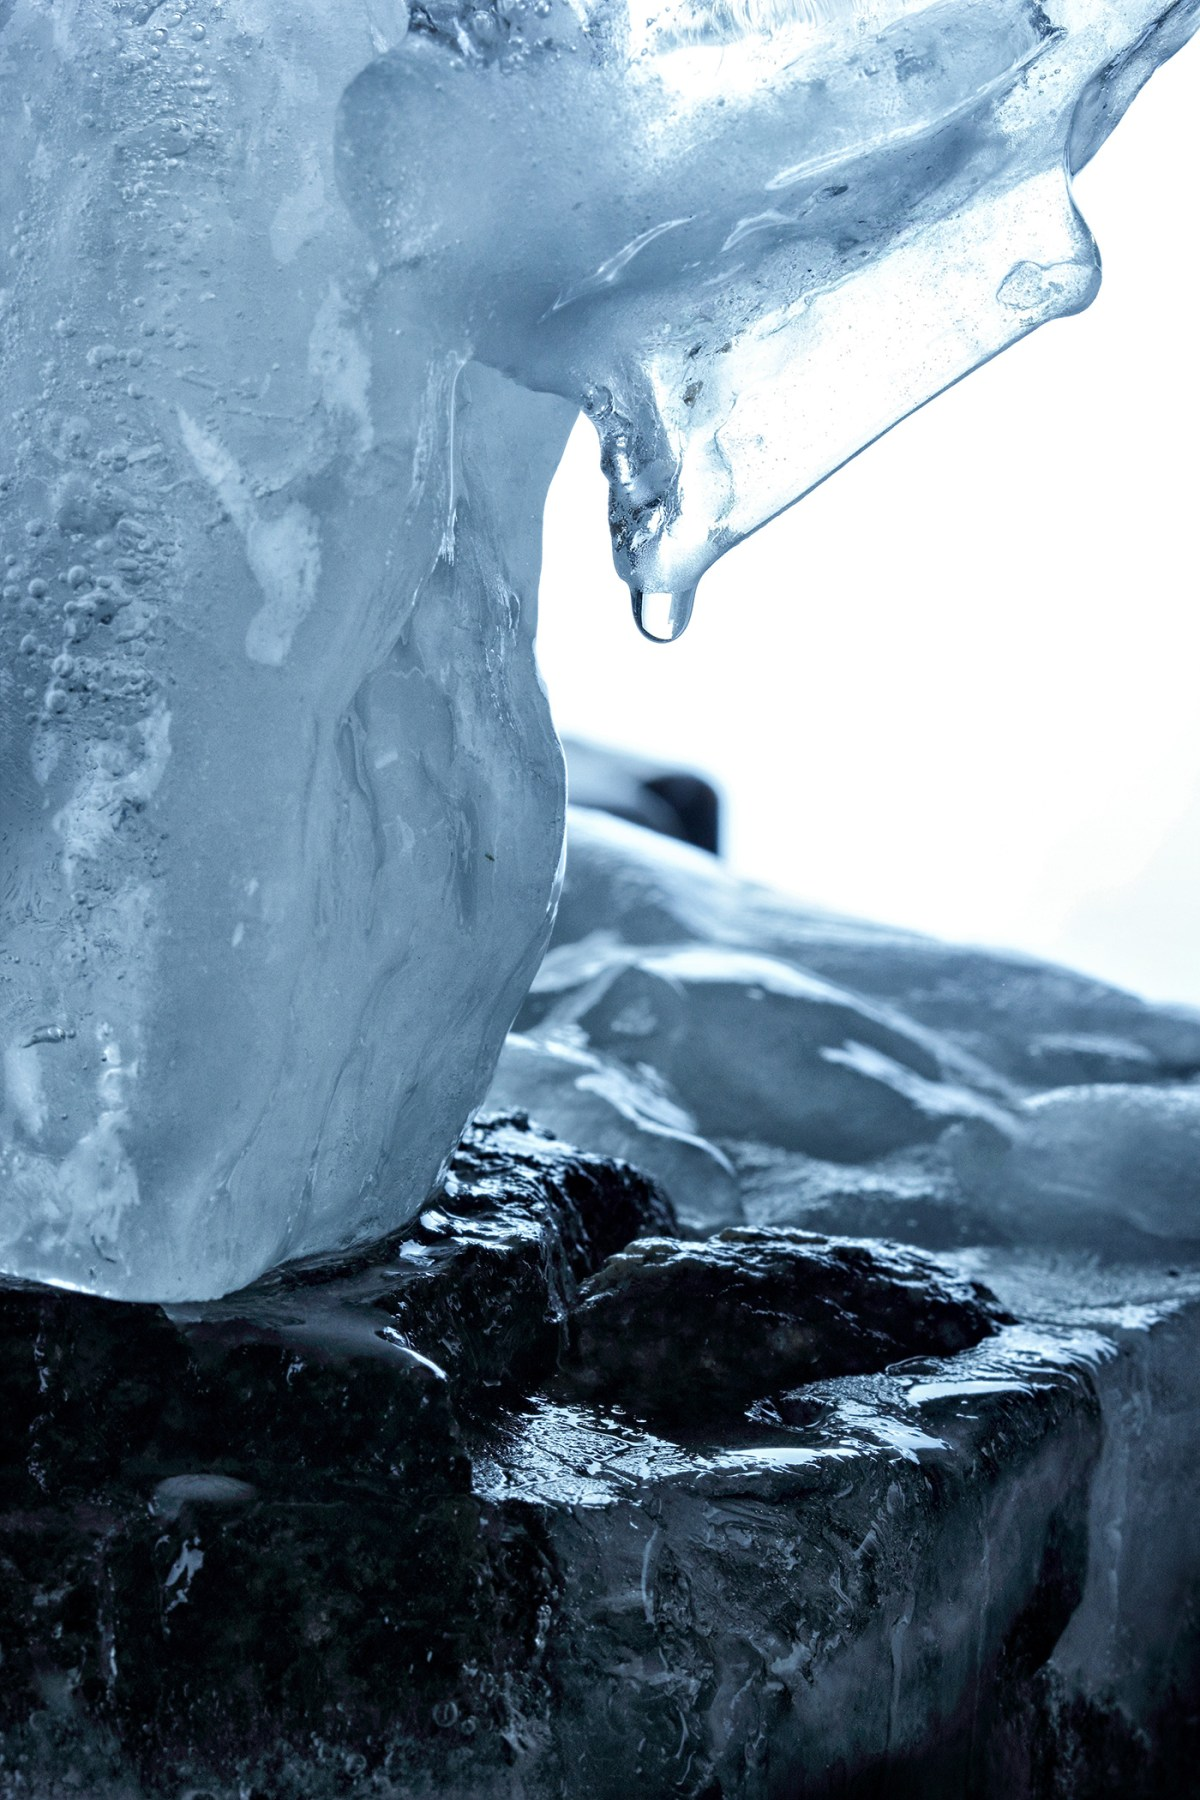 Melted ice abstract figureon the stone melted water drop .NAture background.